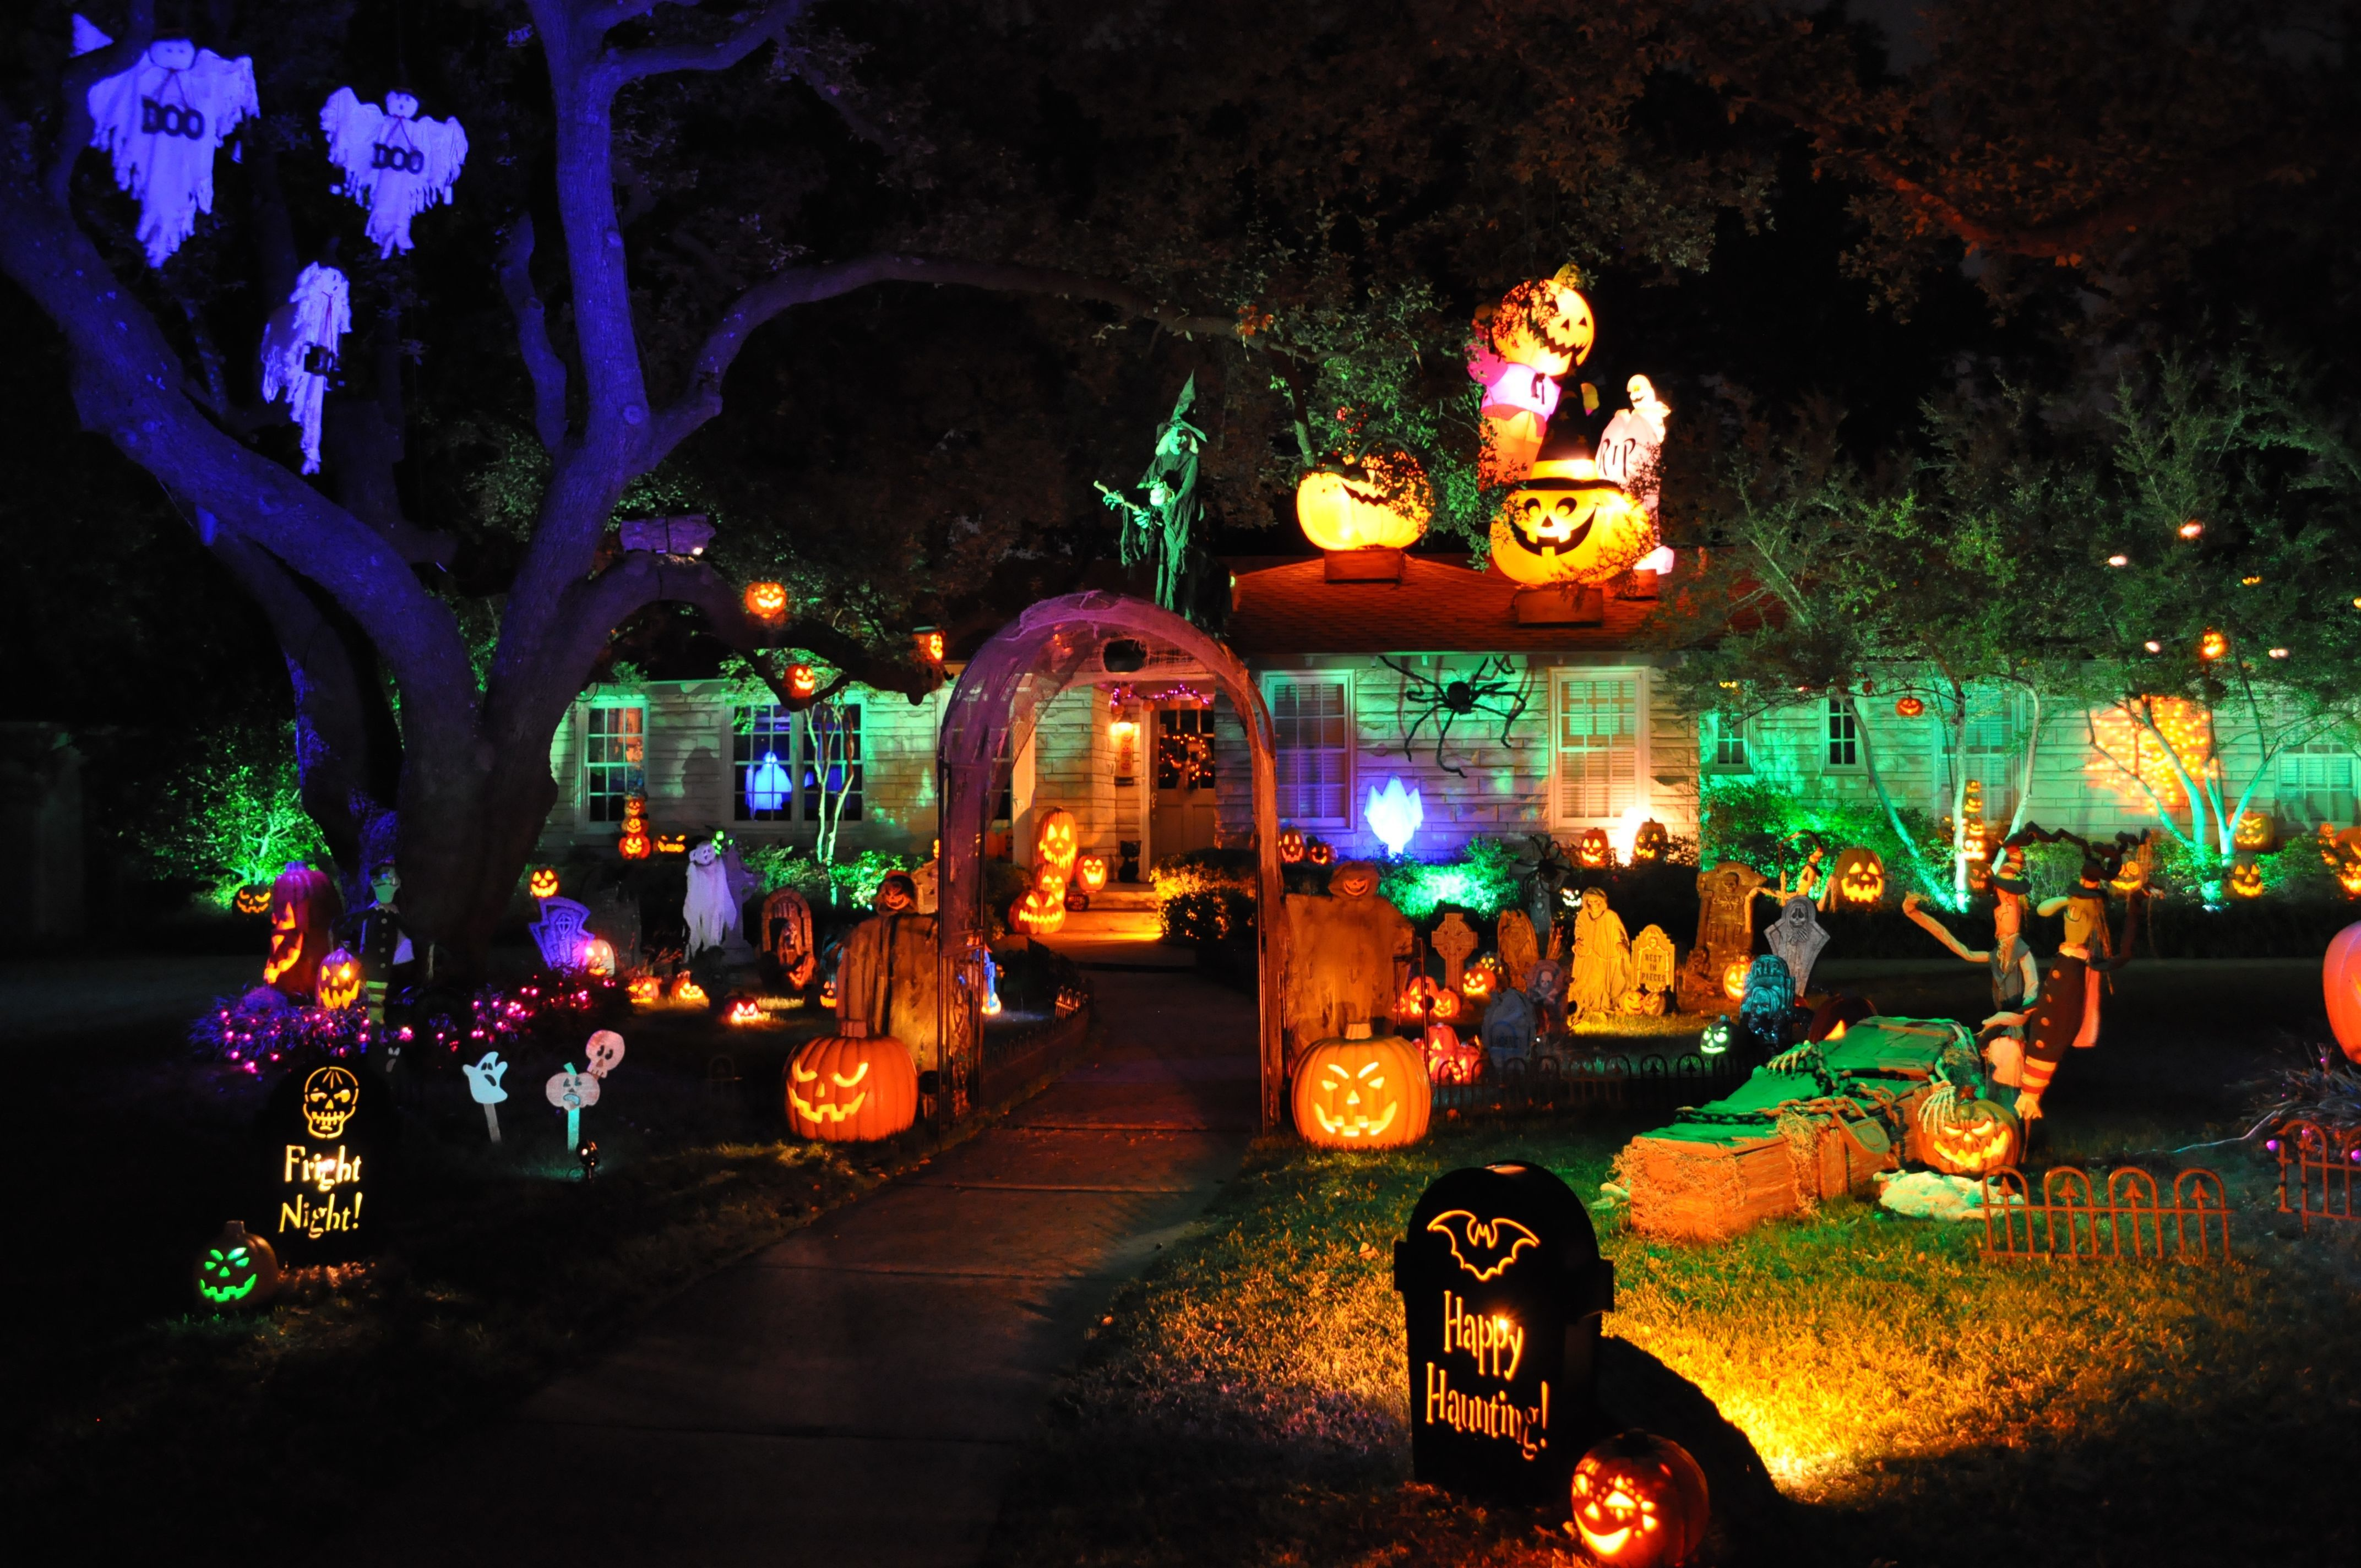 image via penn state - Houses Decorated For Halloween